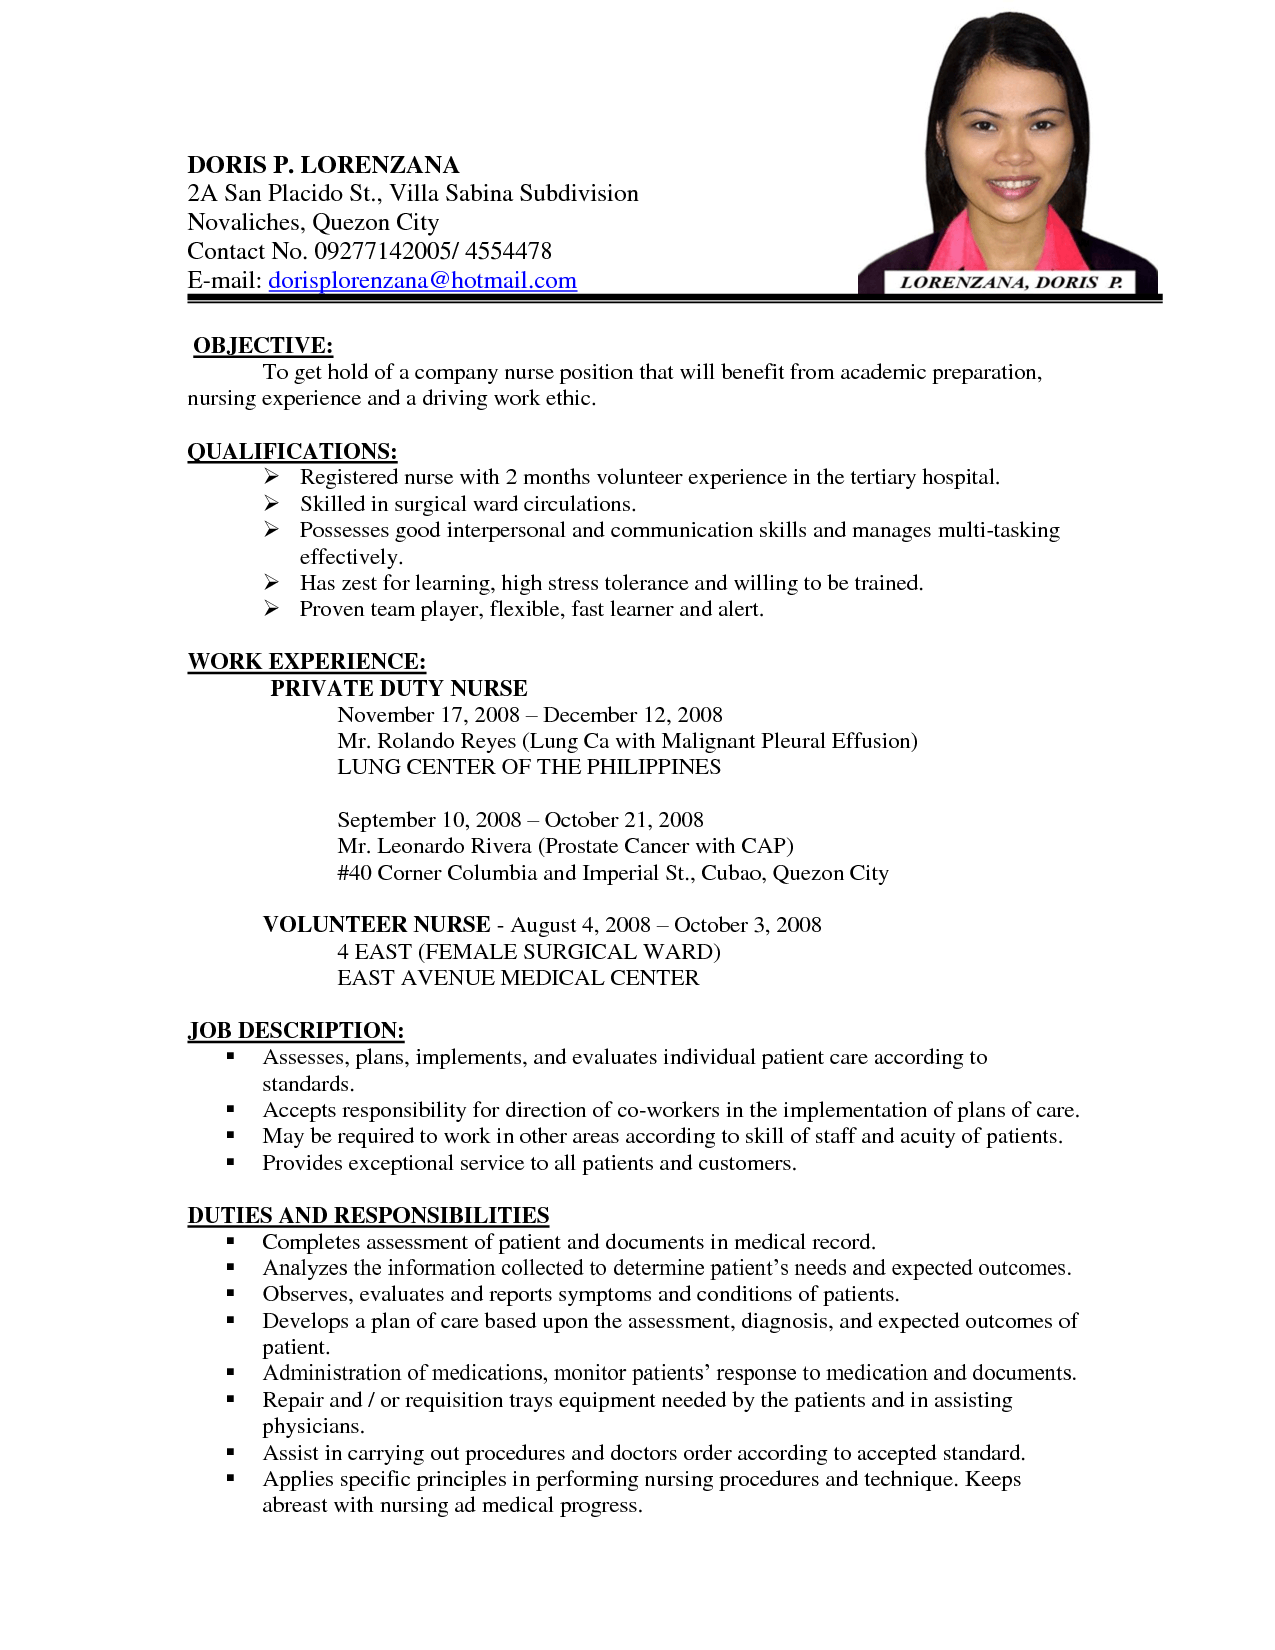 sample resume for nurses - Nurse Resume Sample